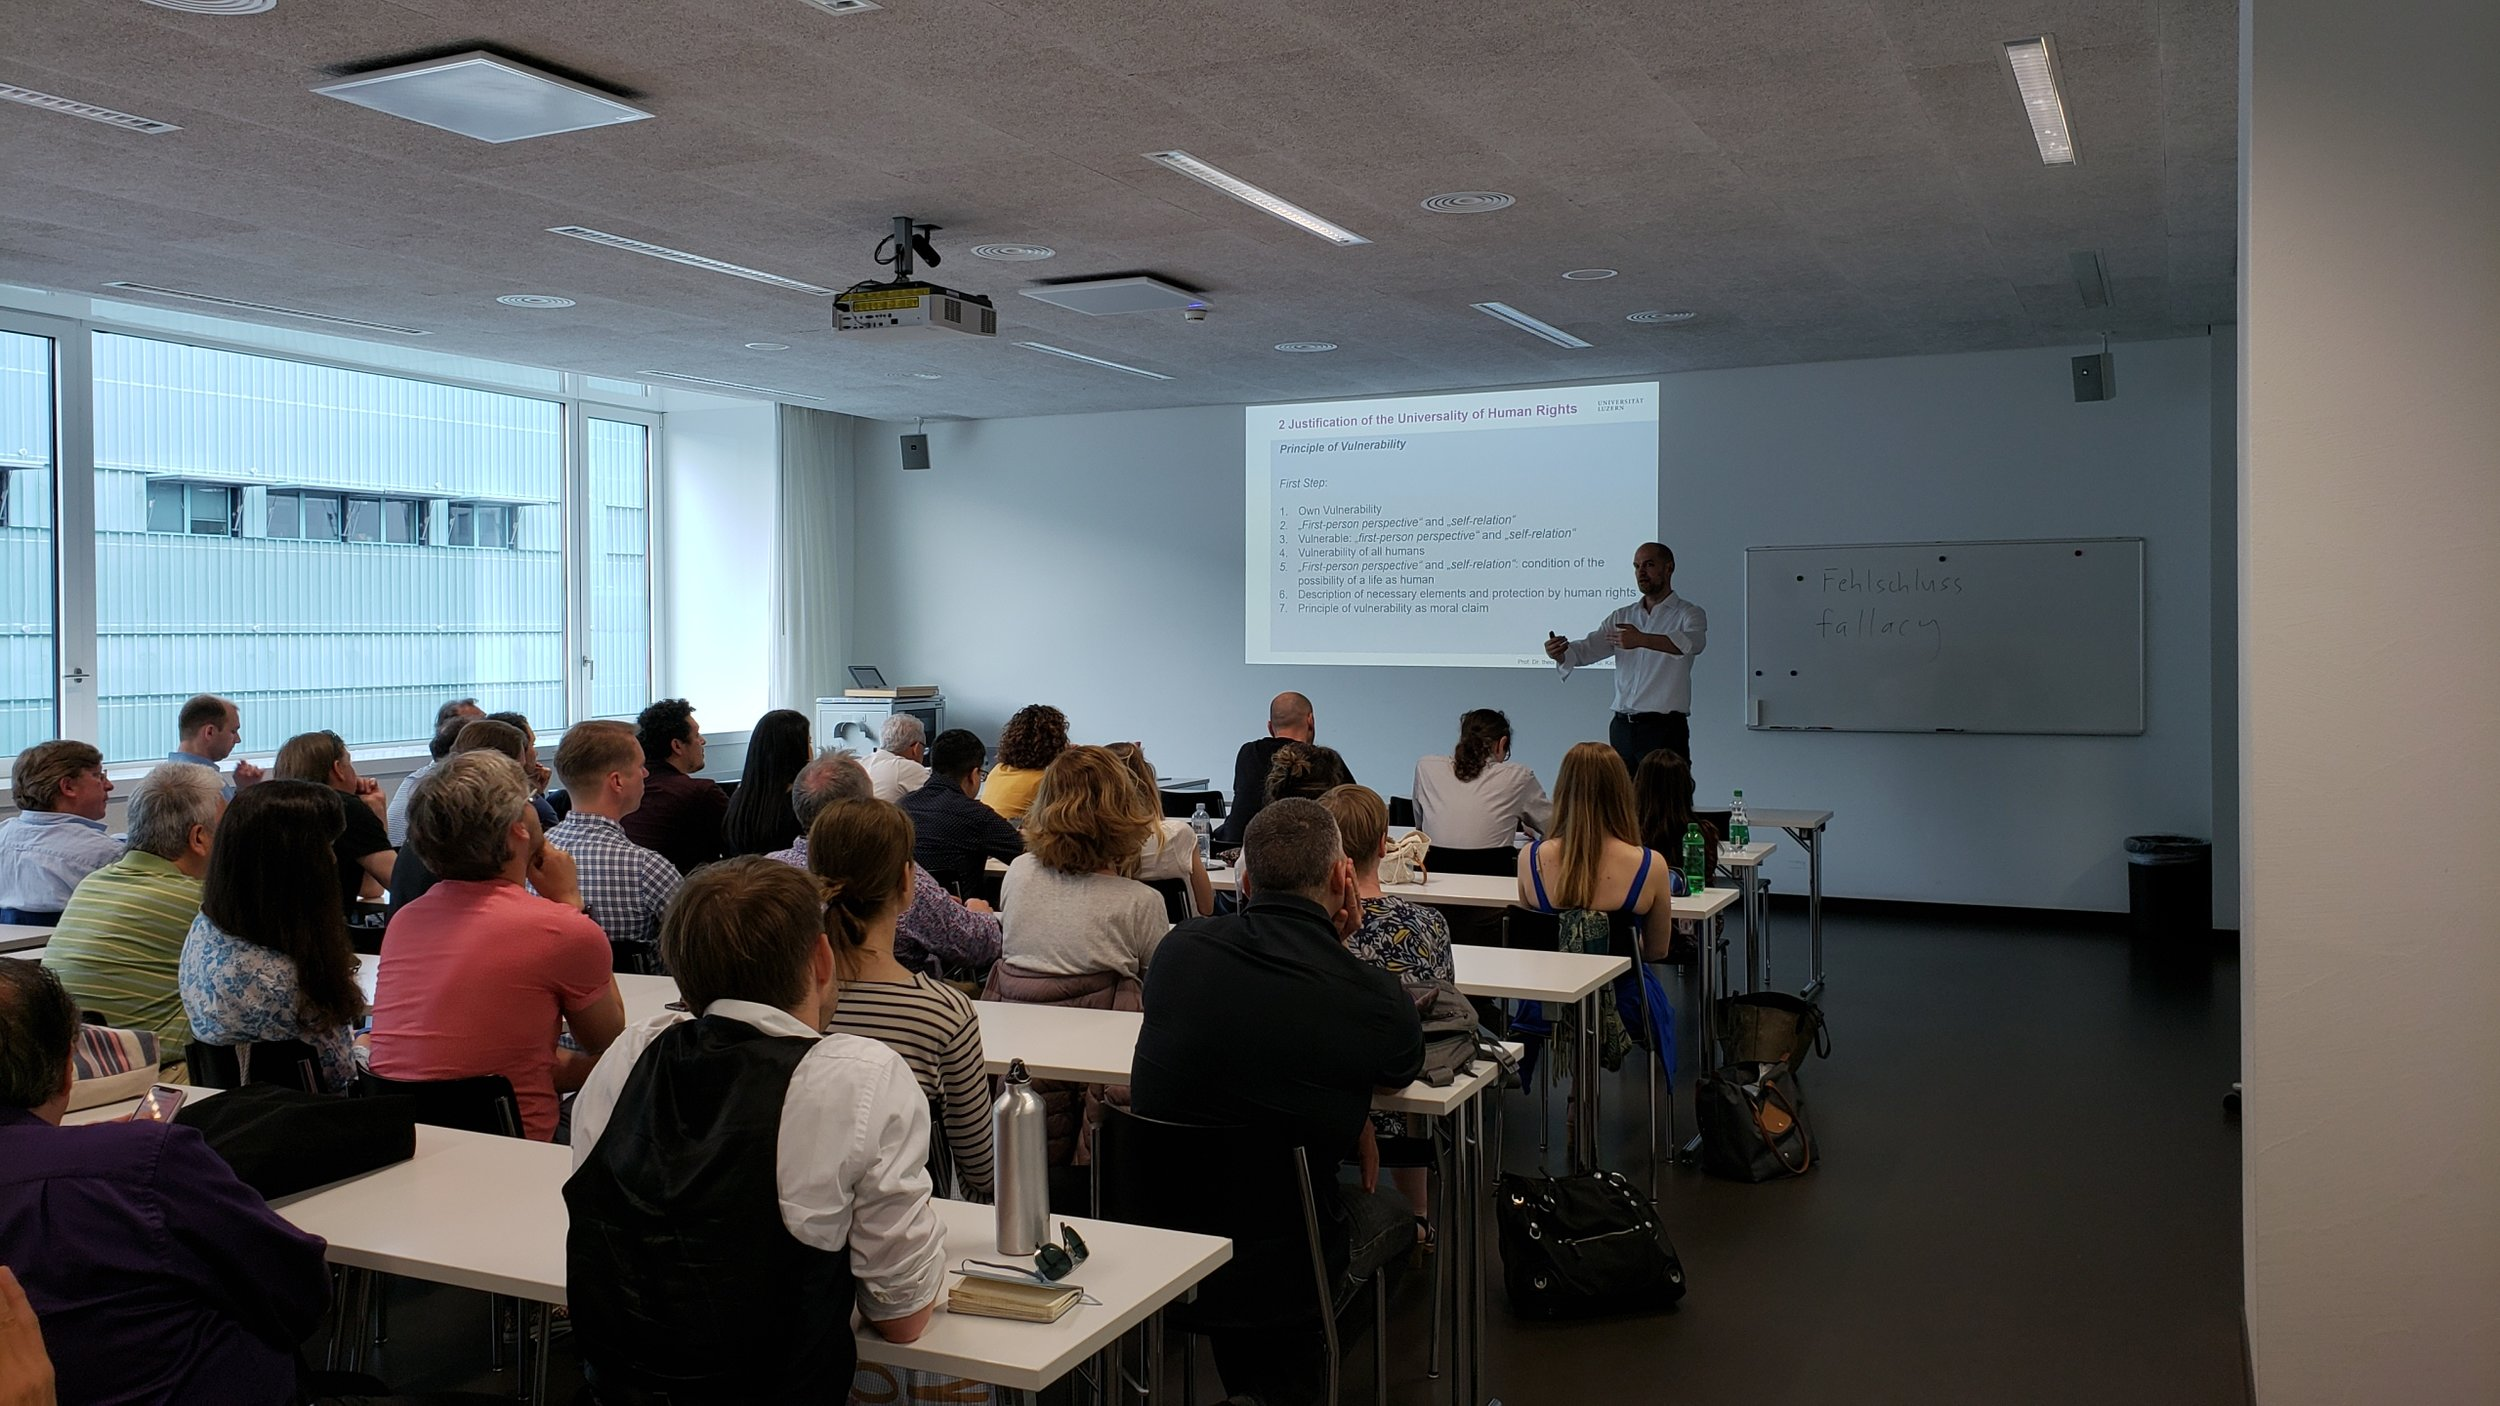 Lecture by Professor Peter Kirchschläger at the University of Lucerne, Switzerland, to the Human Rights Orchestra between rehearsals